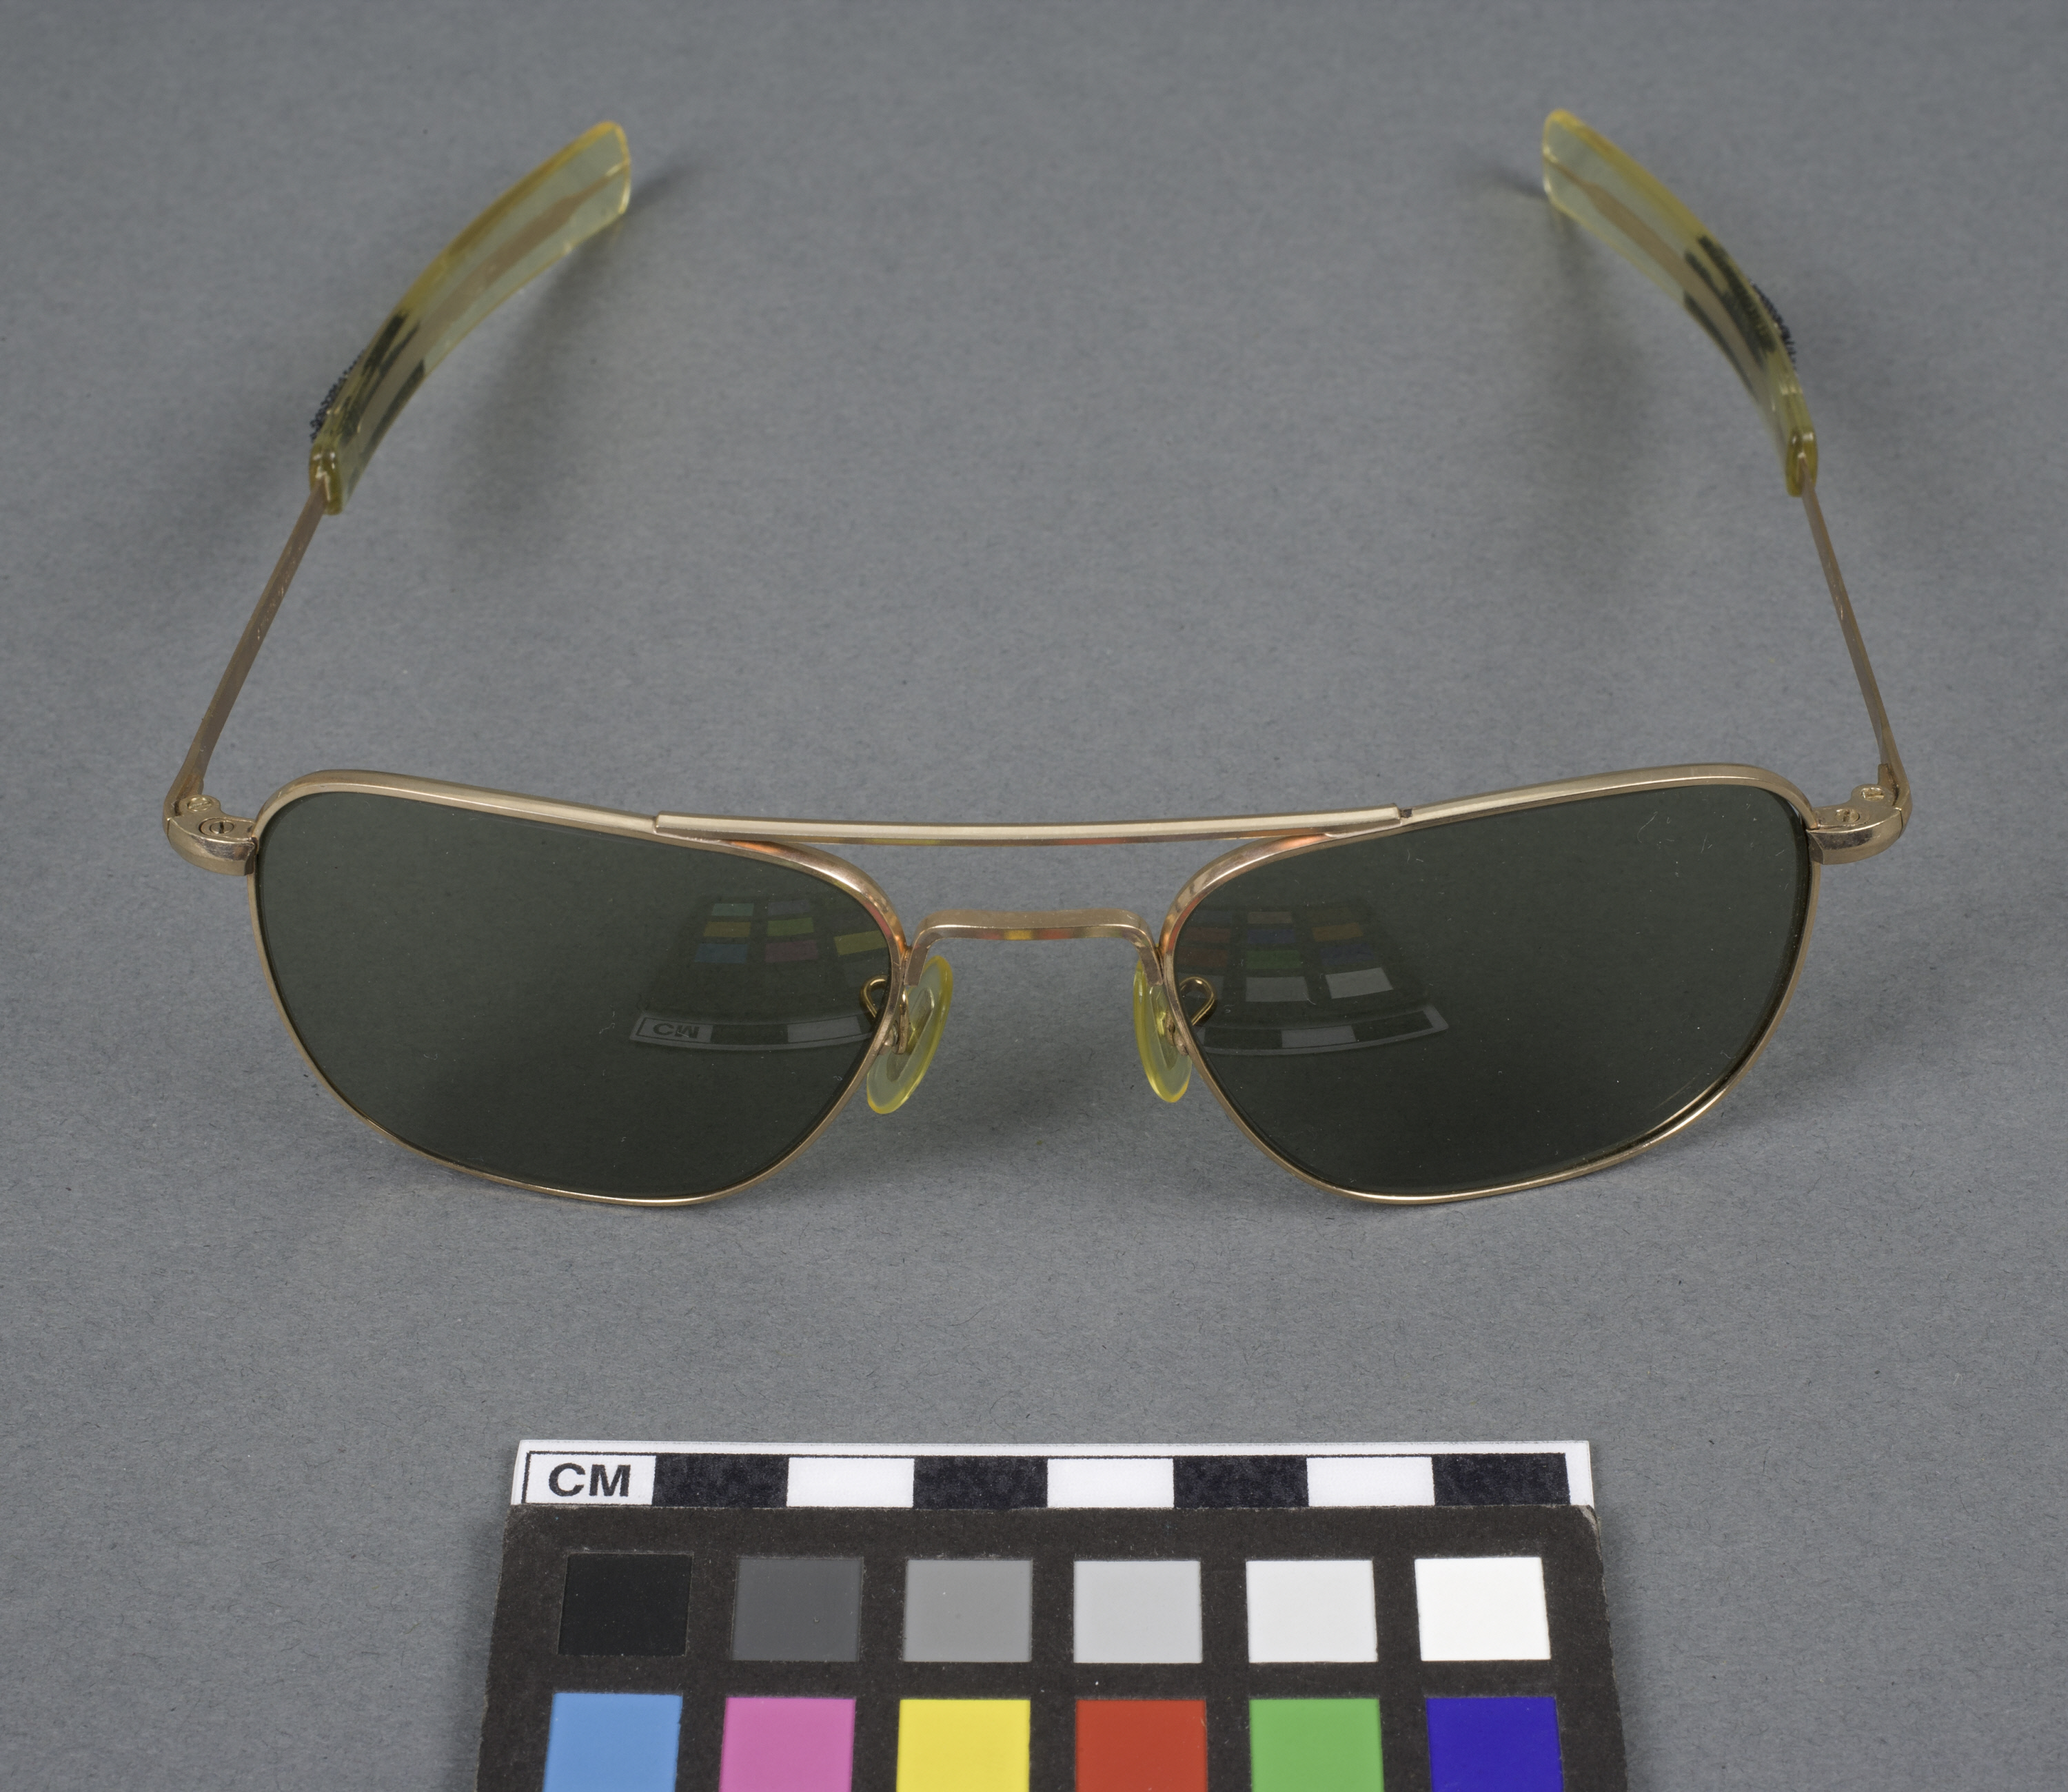 apollo astronaut glasses - photo #11